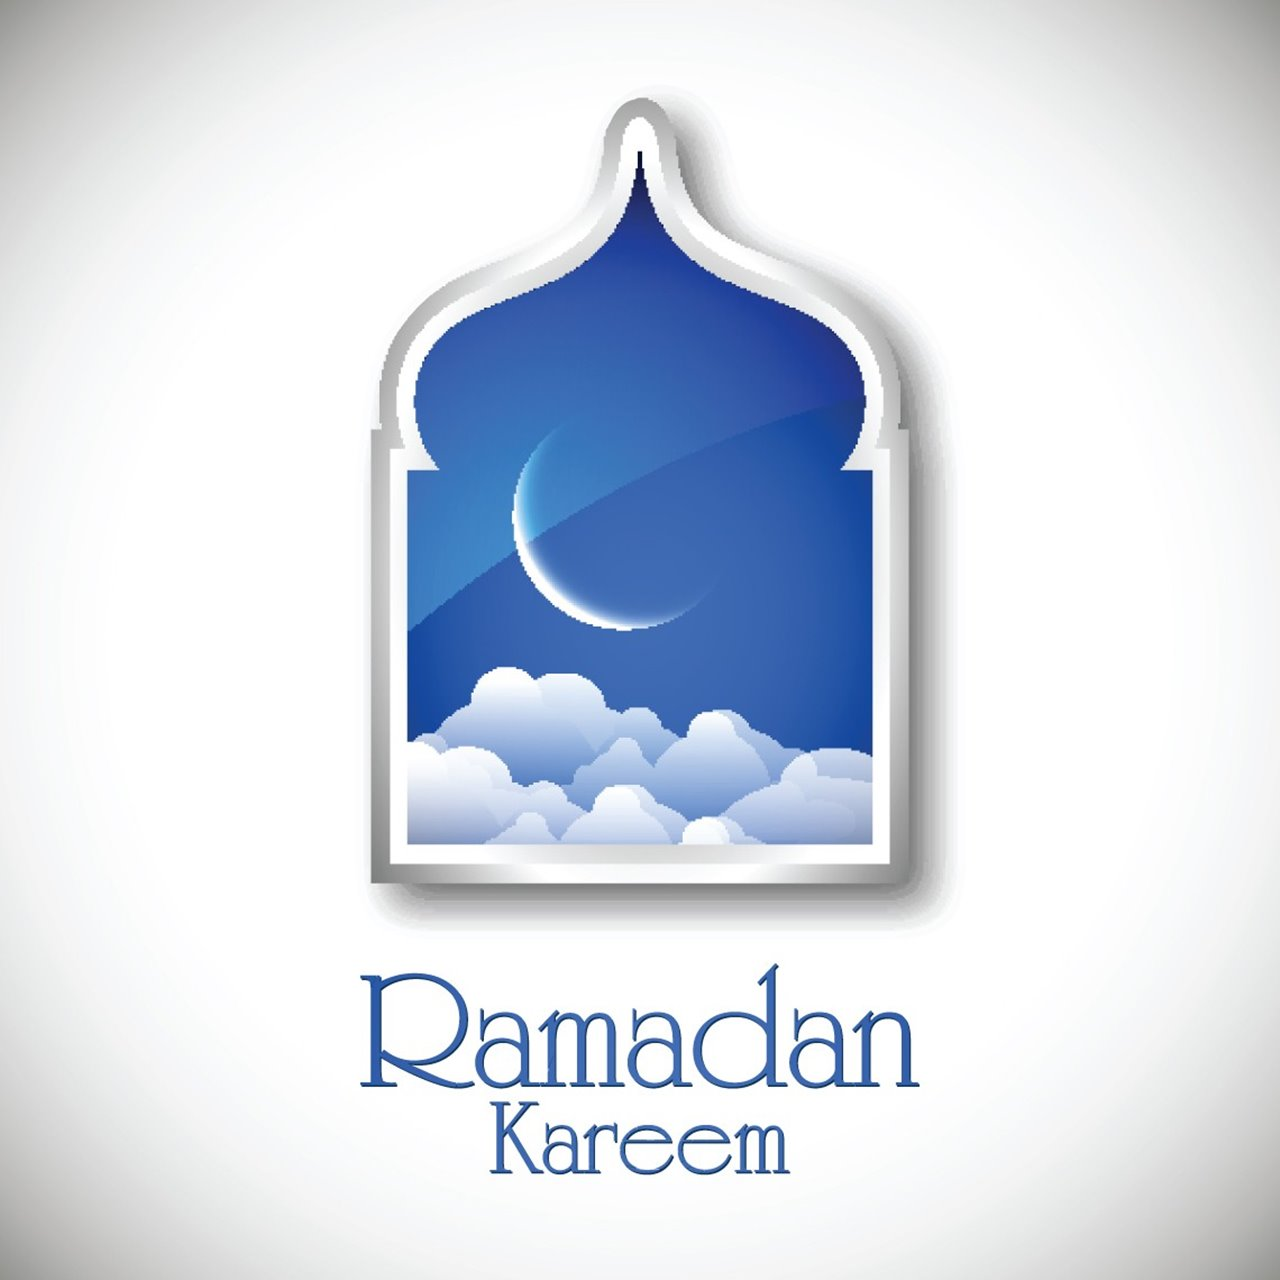 wishing happy ramadan wallpapers amp cards 2015 xcitefunnet